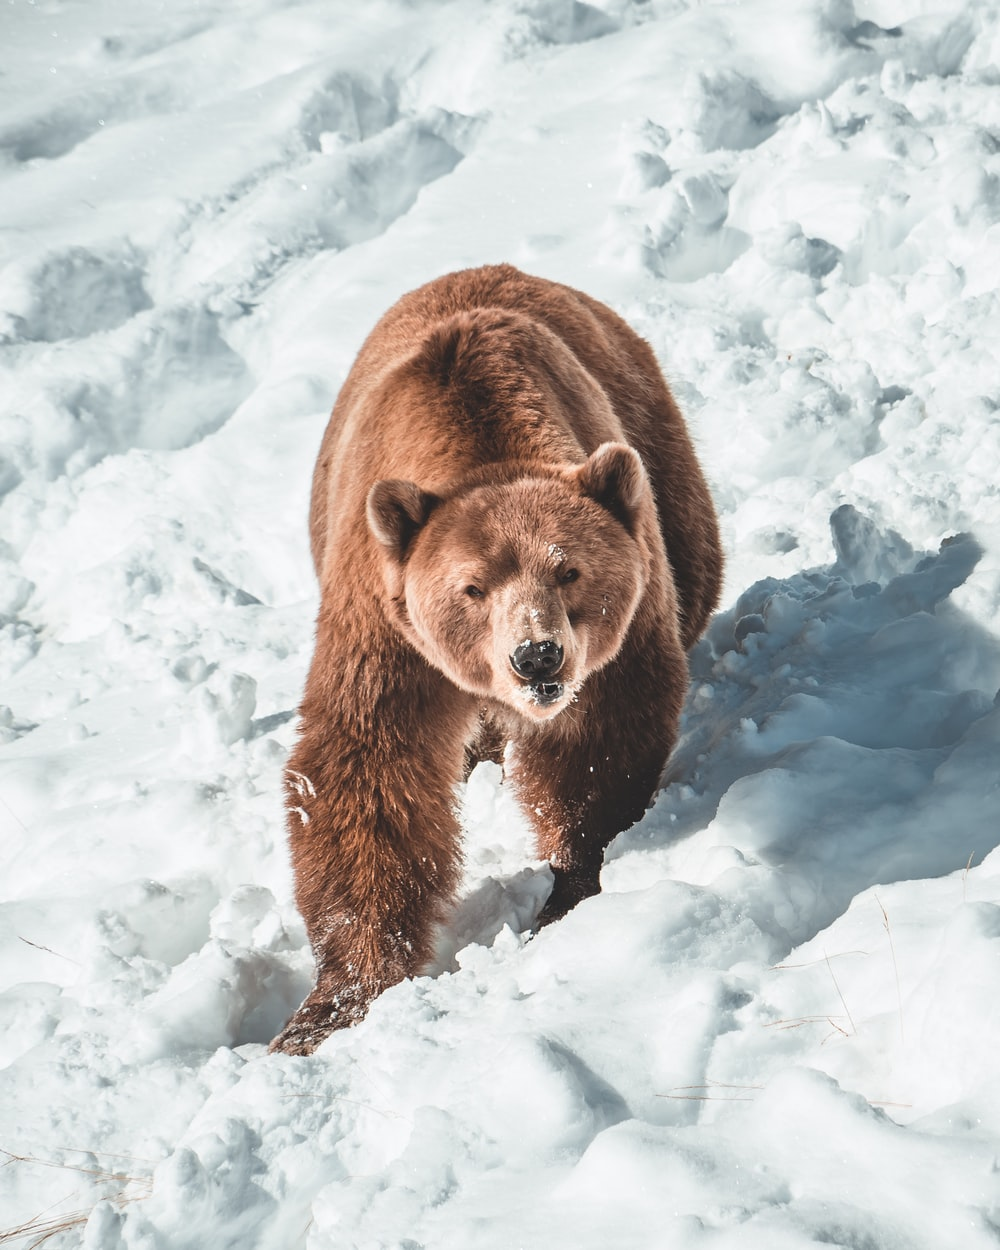 brown bear on snow covered ground during daytime